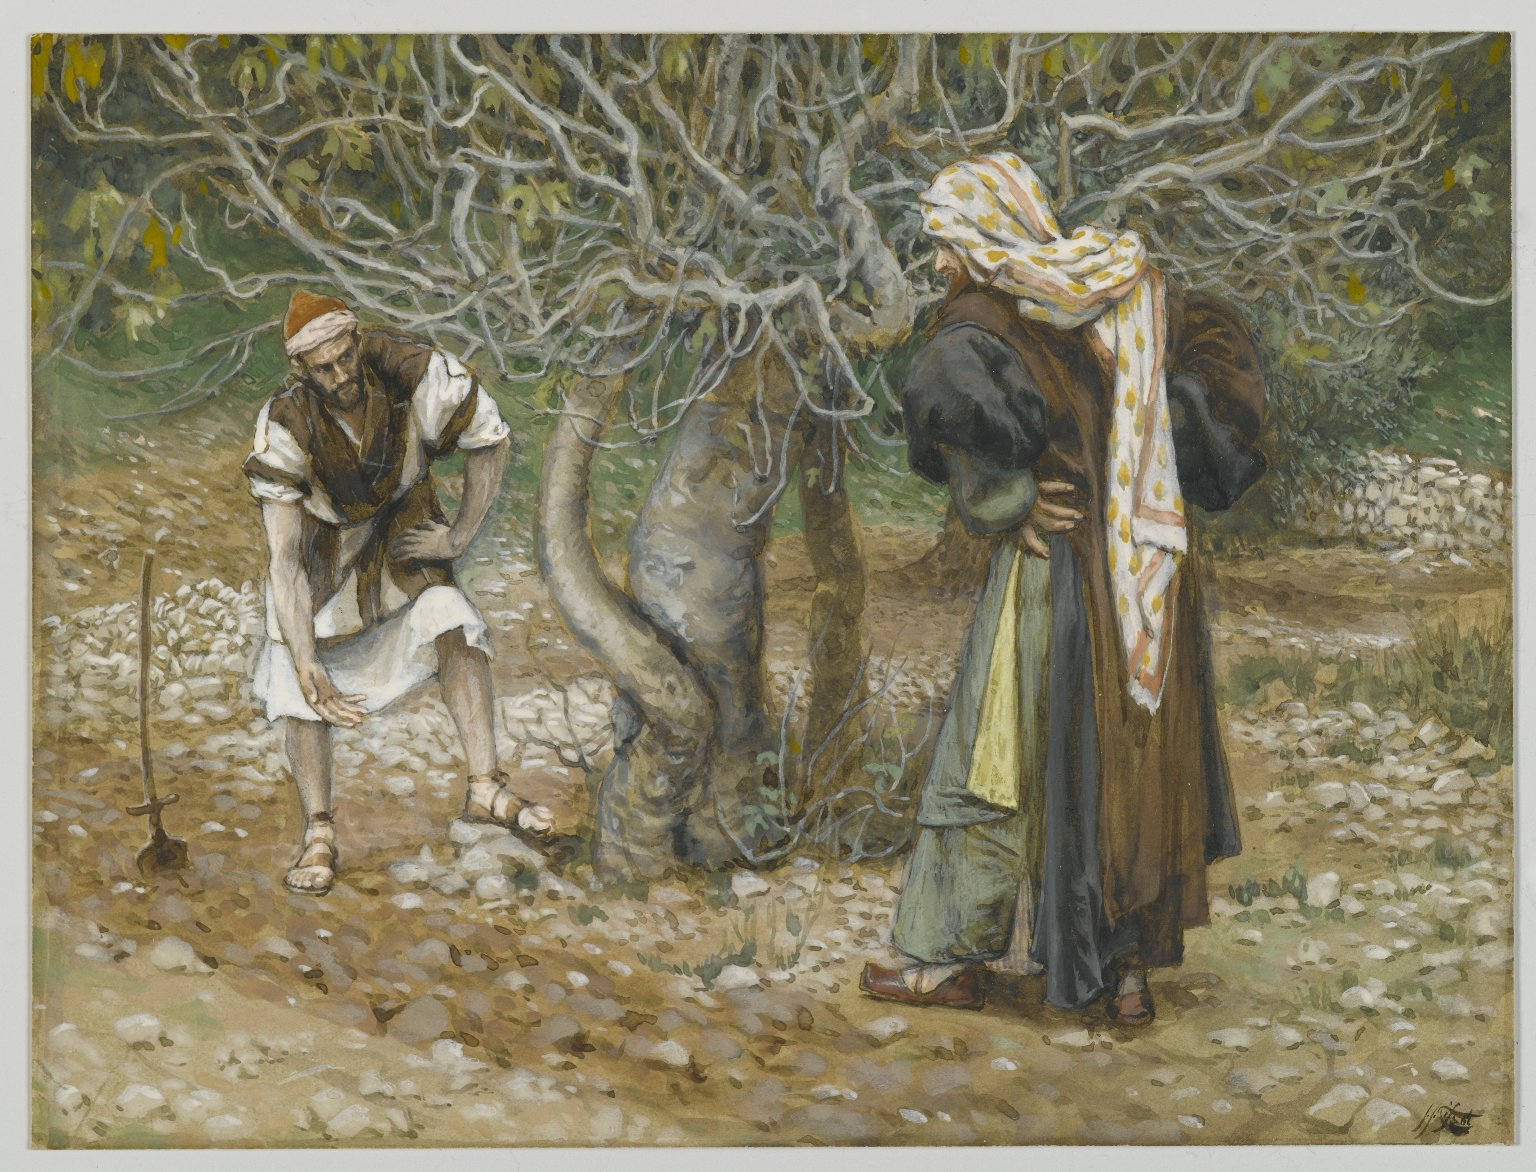 James Tissot The Vine Dresser and the Fig Tree